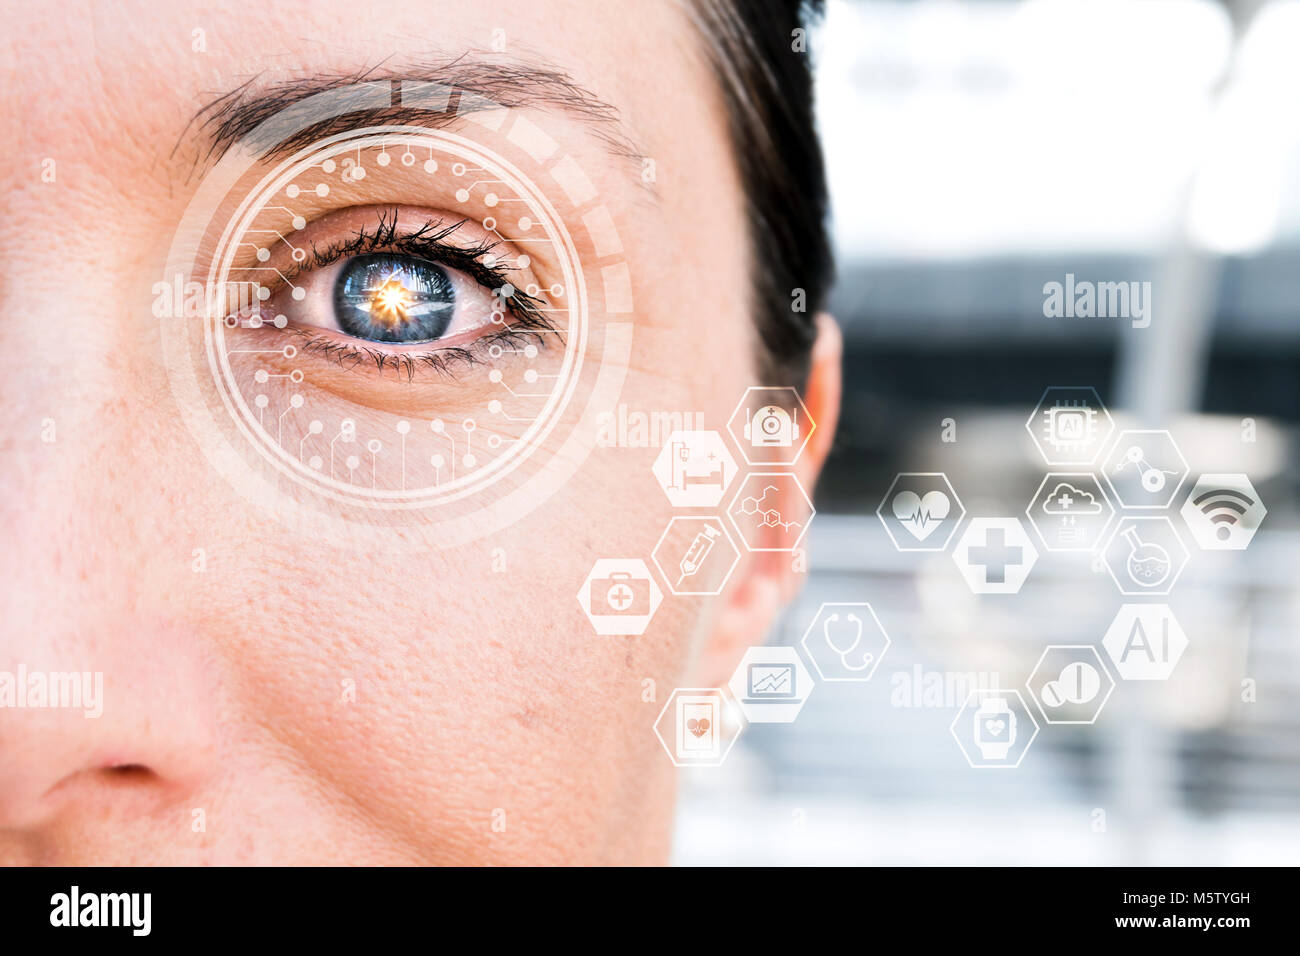 Artificial intelligence , deep learning technology trend concept. AI learns to detect diabetic eye disease. - Stock Image